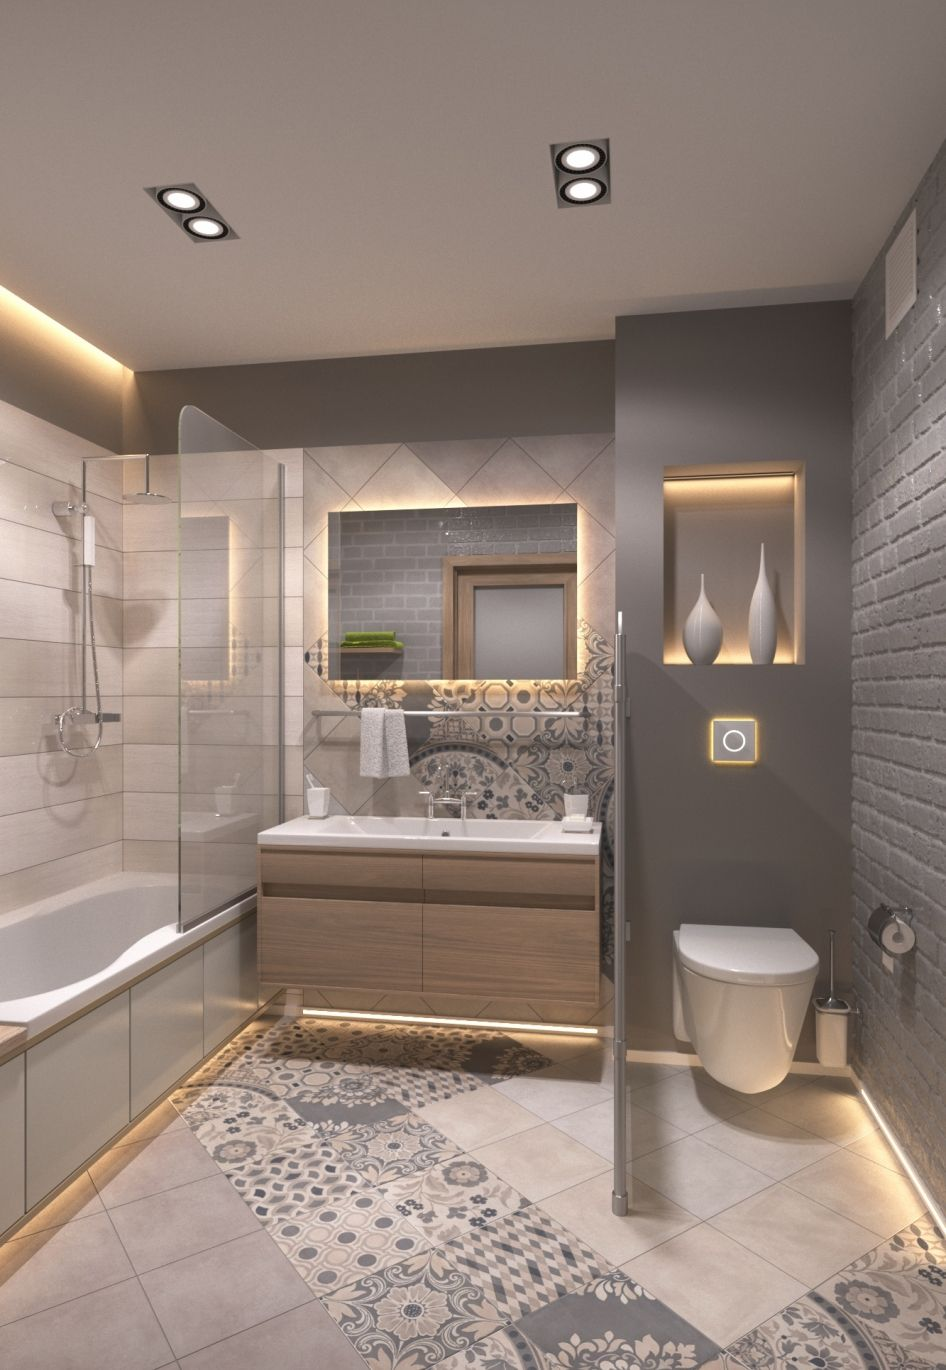 Check Out These Fantastic Bathroom Decor Ideas For Your Home Click On Image To See Many More Small Bathroom Styles Bathroom Design Small Small Master Bathroom